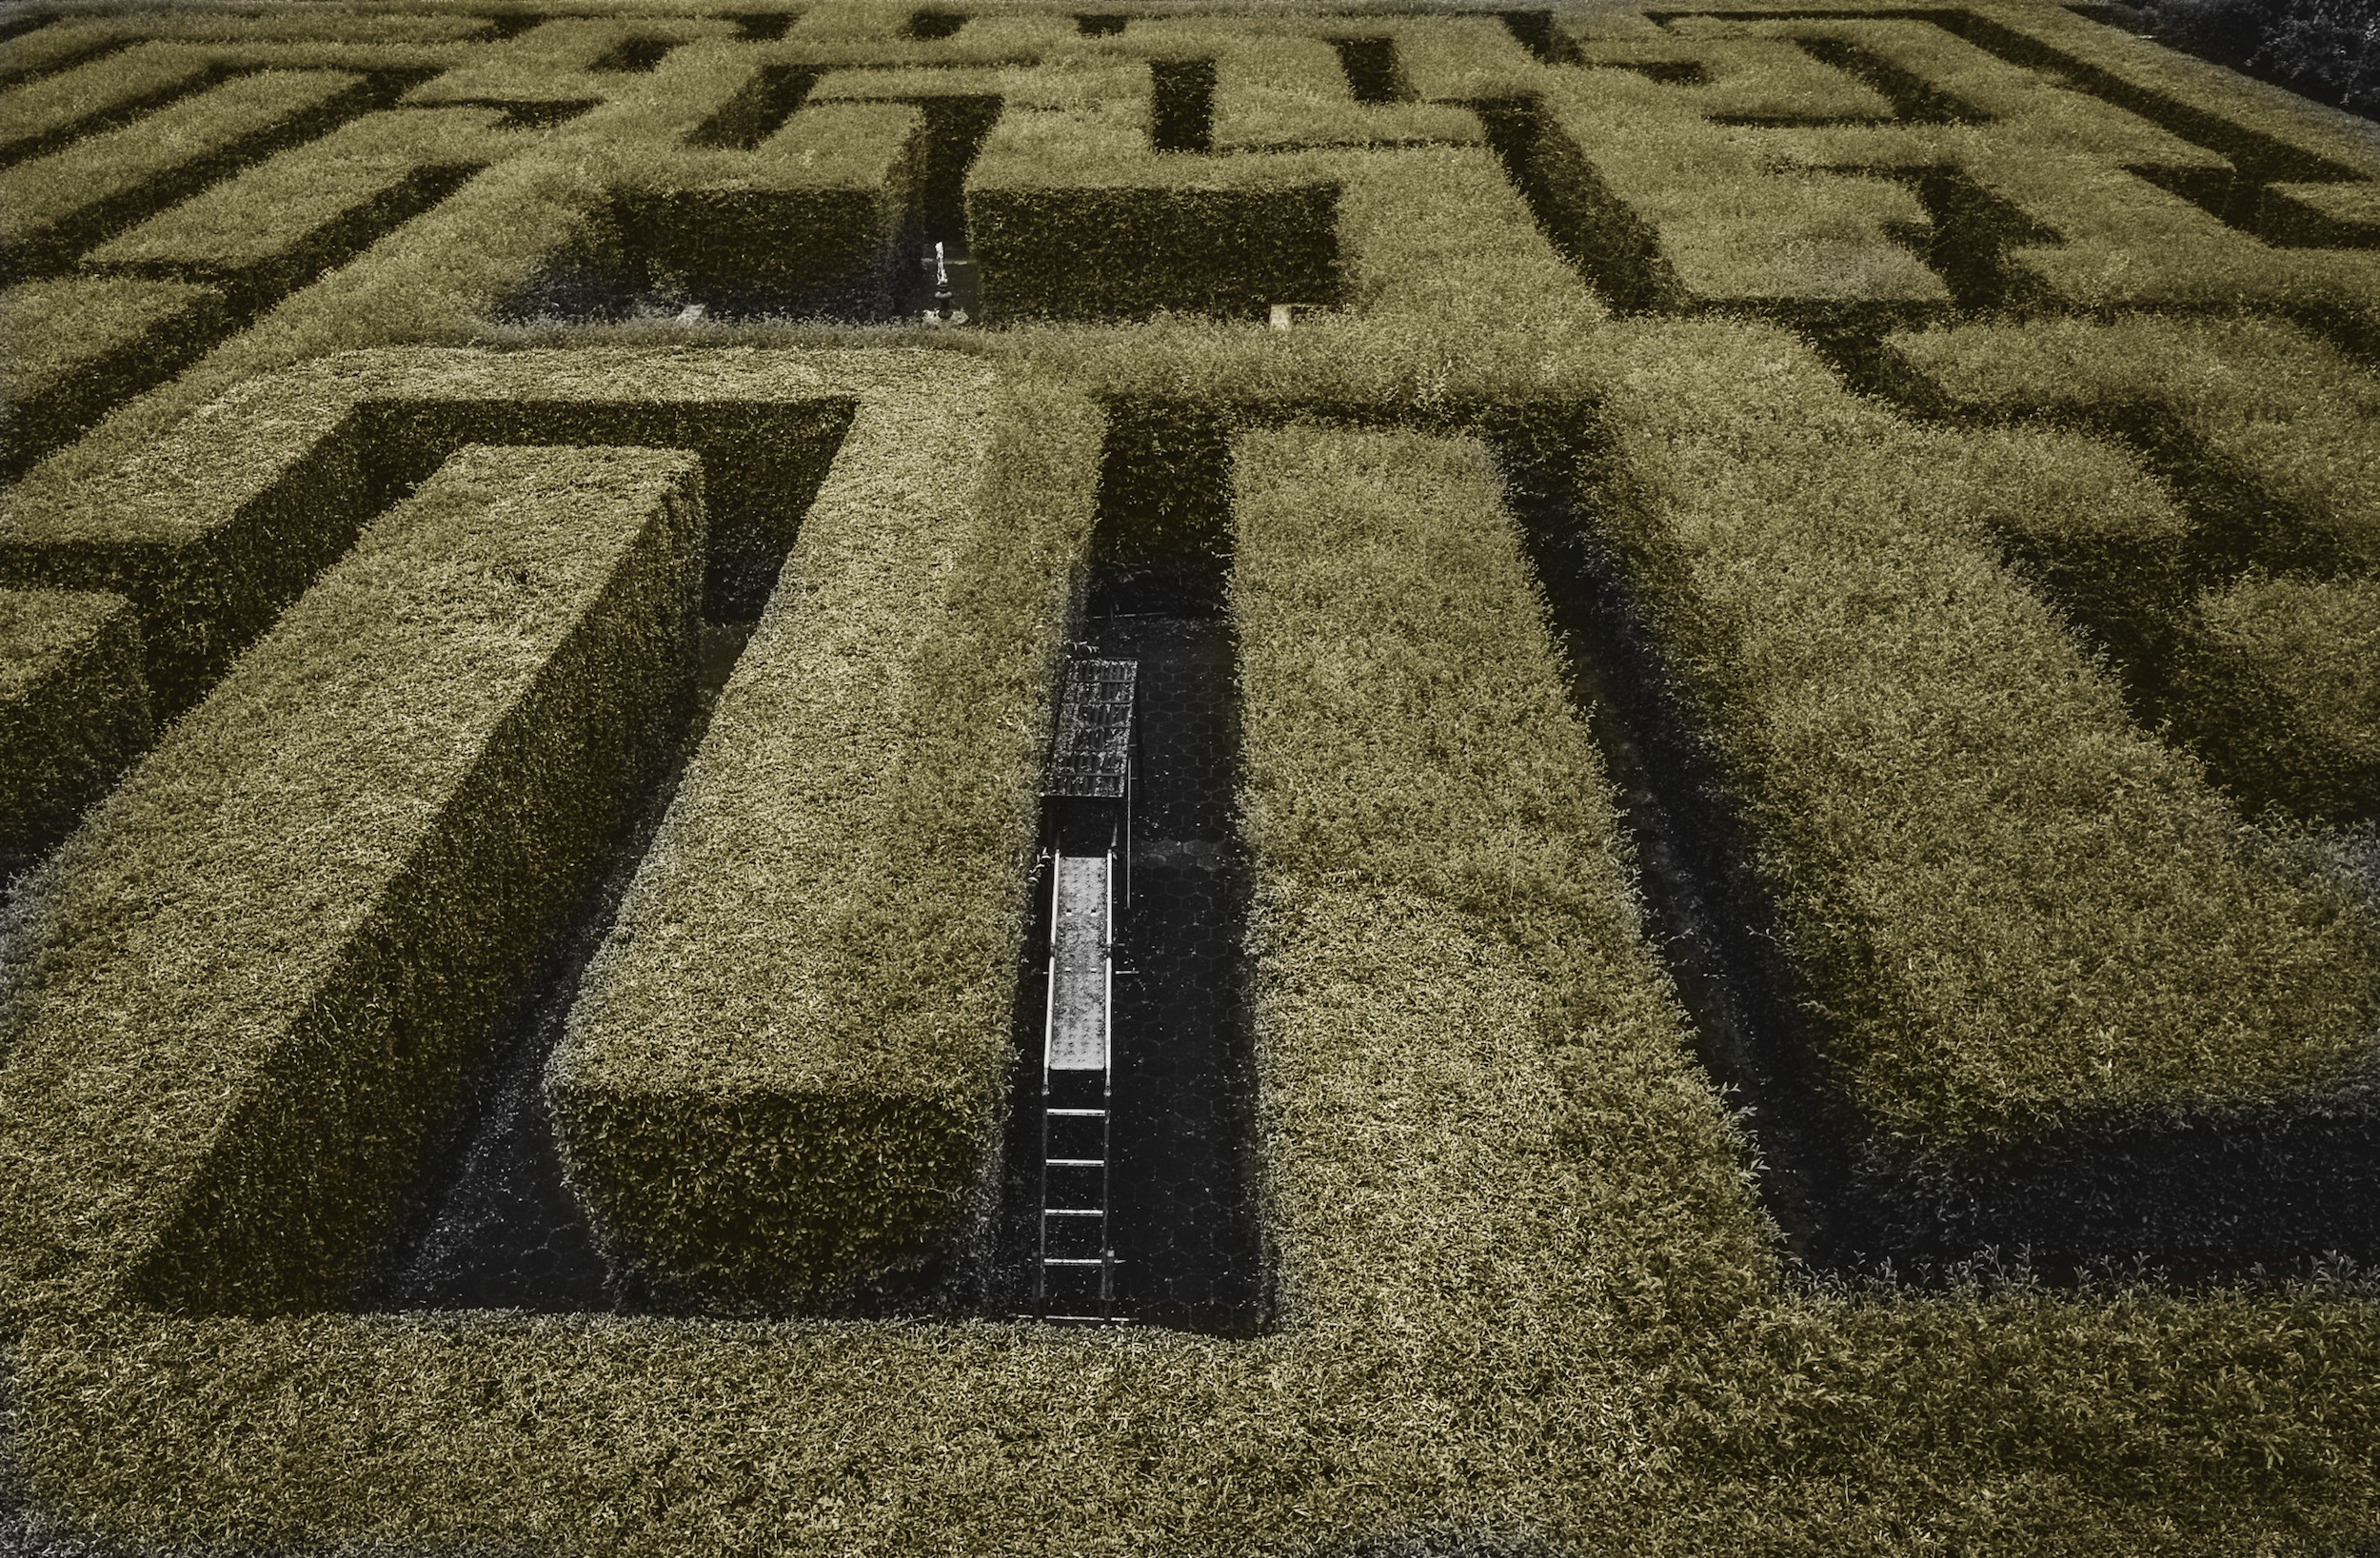 Creating an accelerometer-powered maze game in React Native